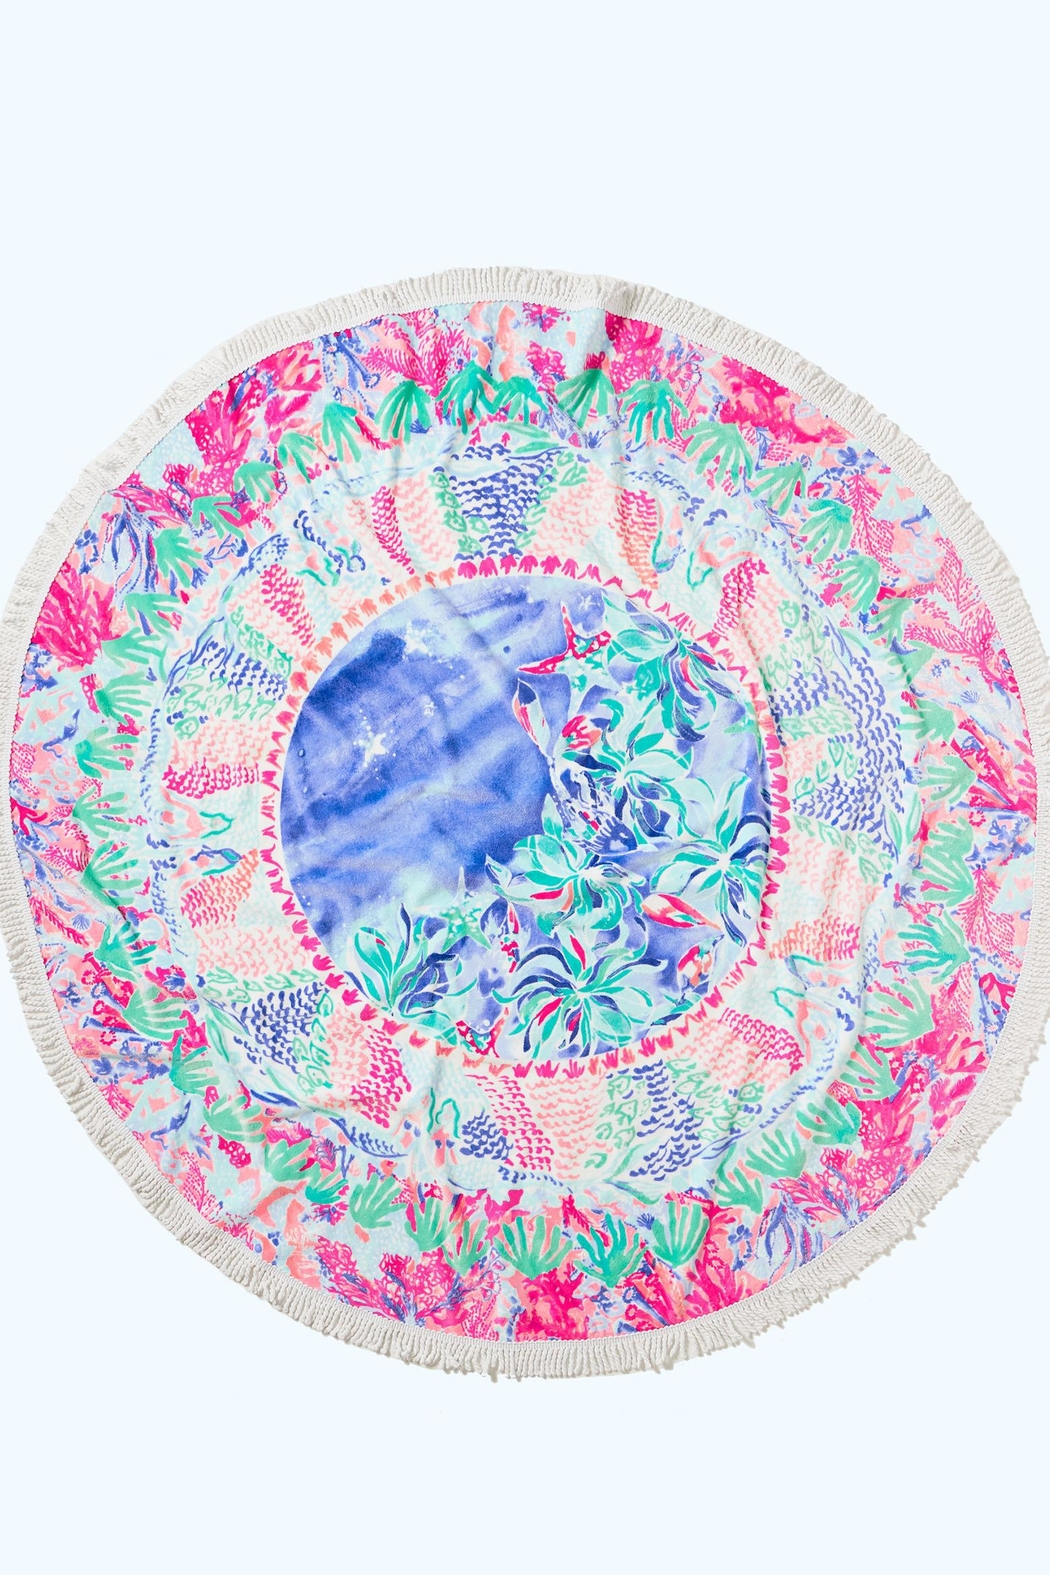 8194ab535d553f Lilly Pulitzer Beach Towel - The Most Beautiful Beach 2017